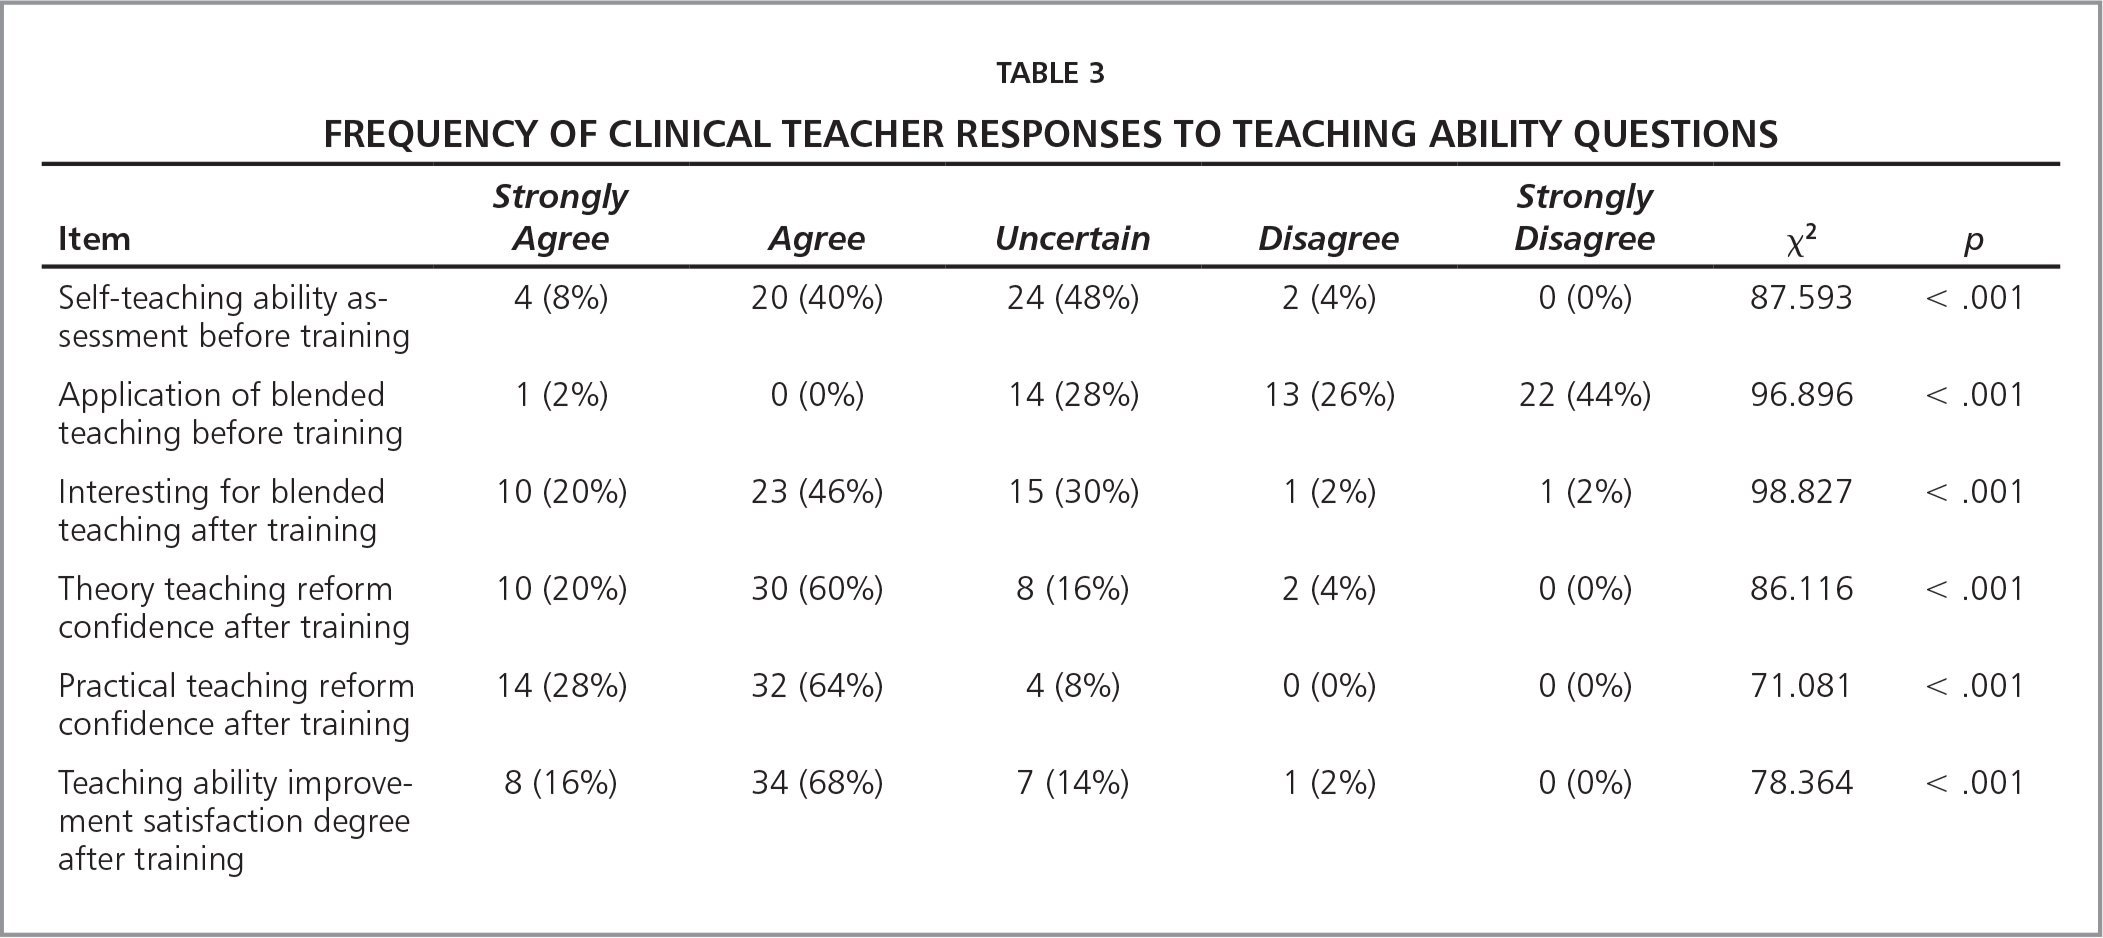 Frequency of Clinical Teacher Responses to Teaching Ability Questions